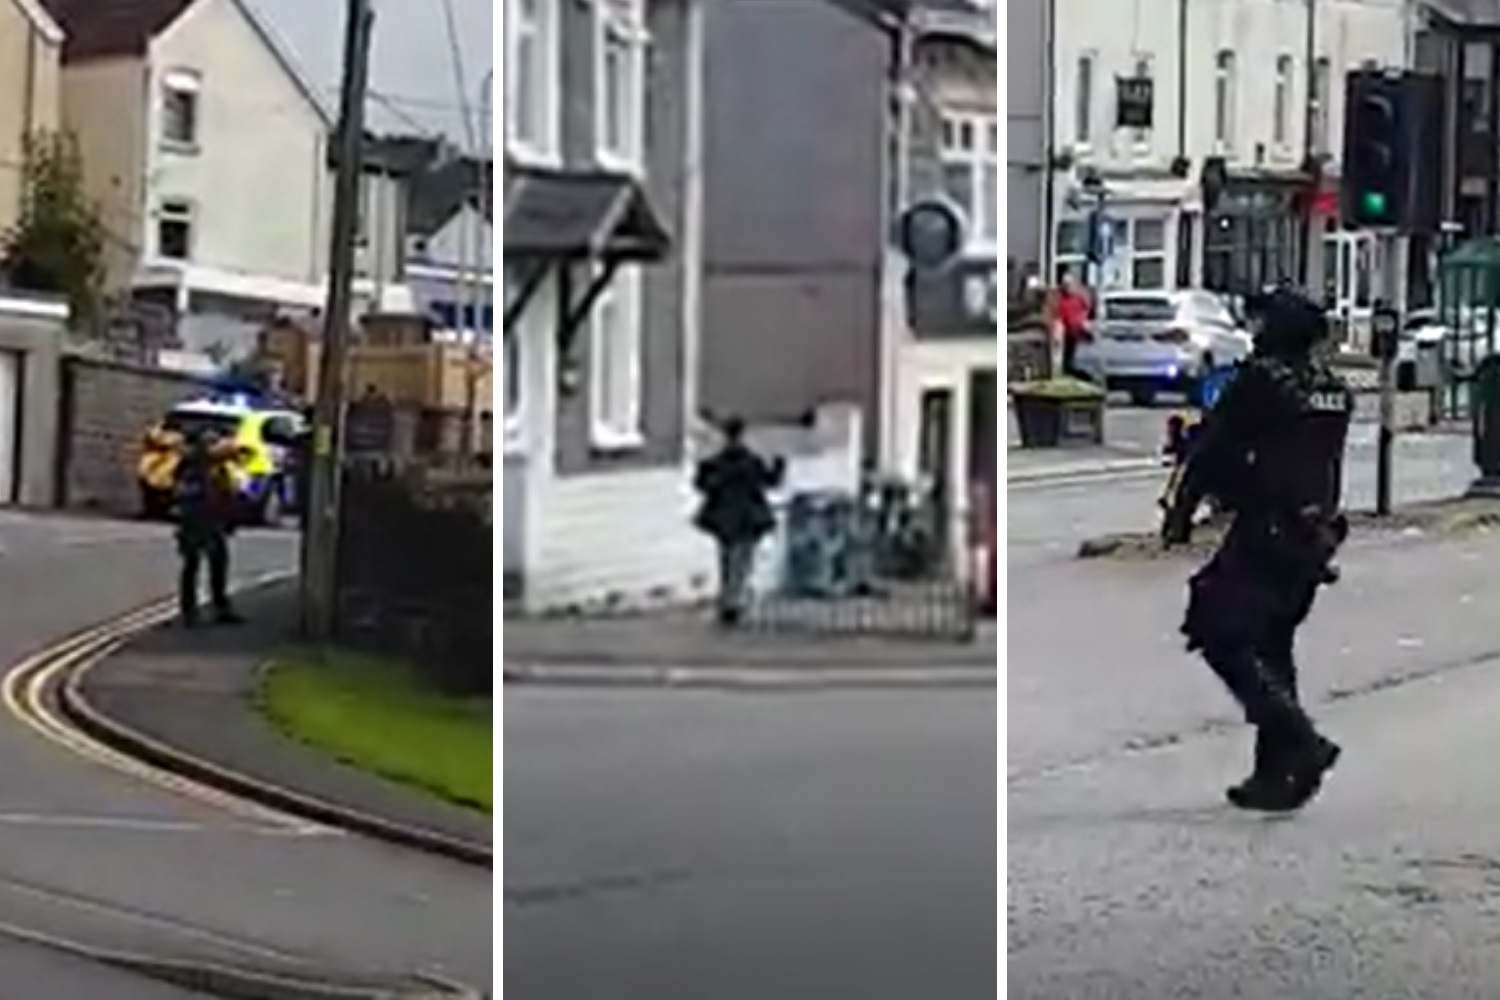 Armed police respond to Maesycwmmer paintball gun incident